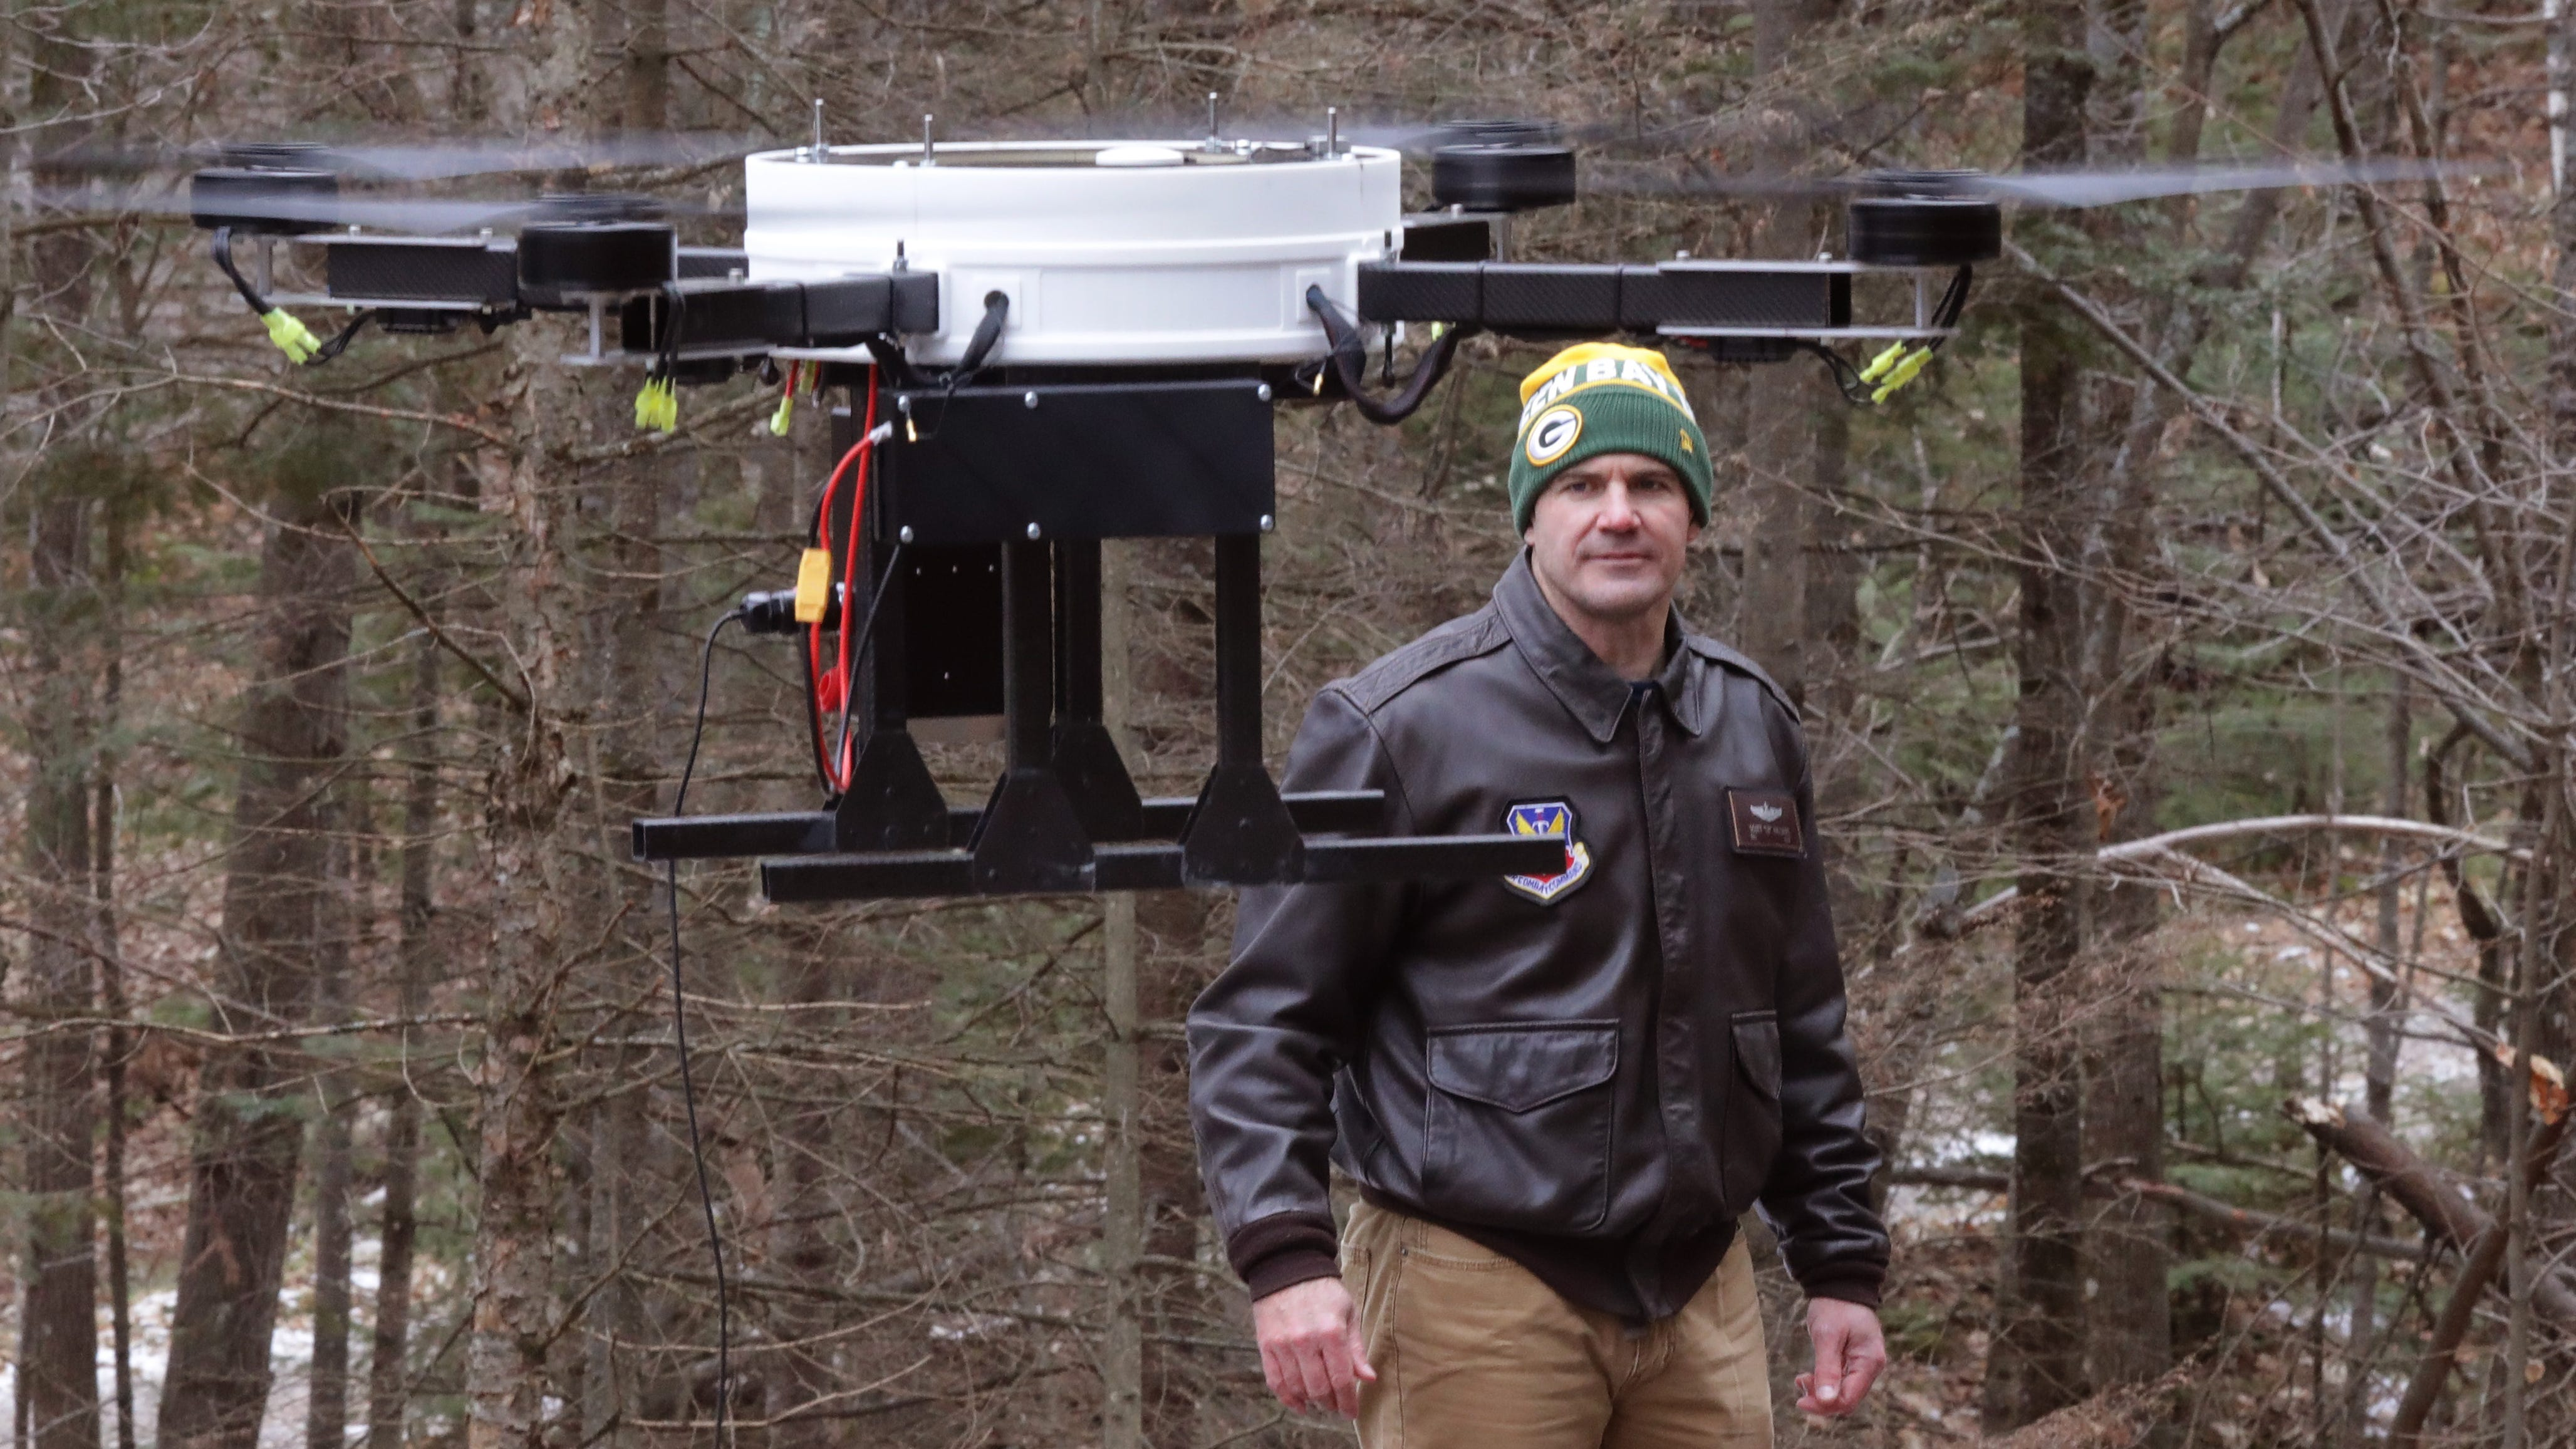 Scott Williams, founder of Wisconsin Telelift LLC, is shown with a prototype drone in Three Lakes. He plans to use it to hover over a rural area in the Northland Pines School District, with the drone sending a cellular signal to rural homes so students can work online.